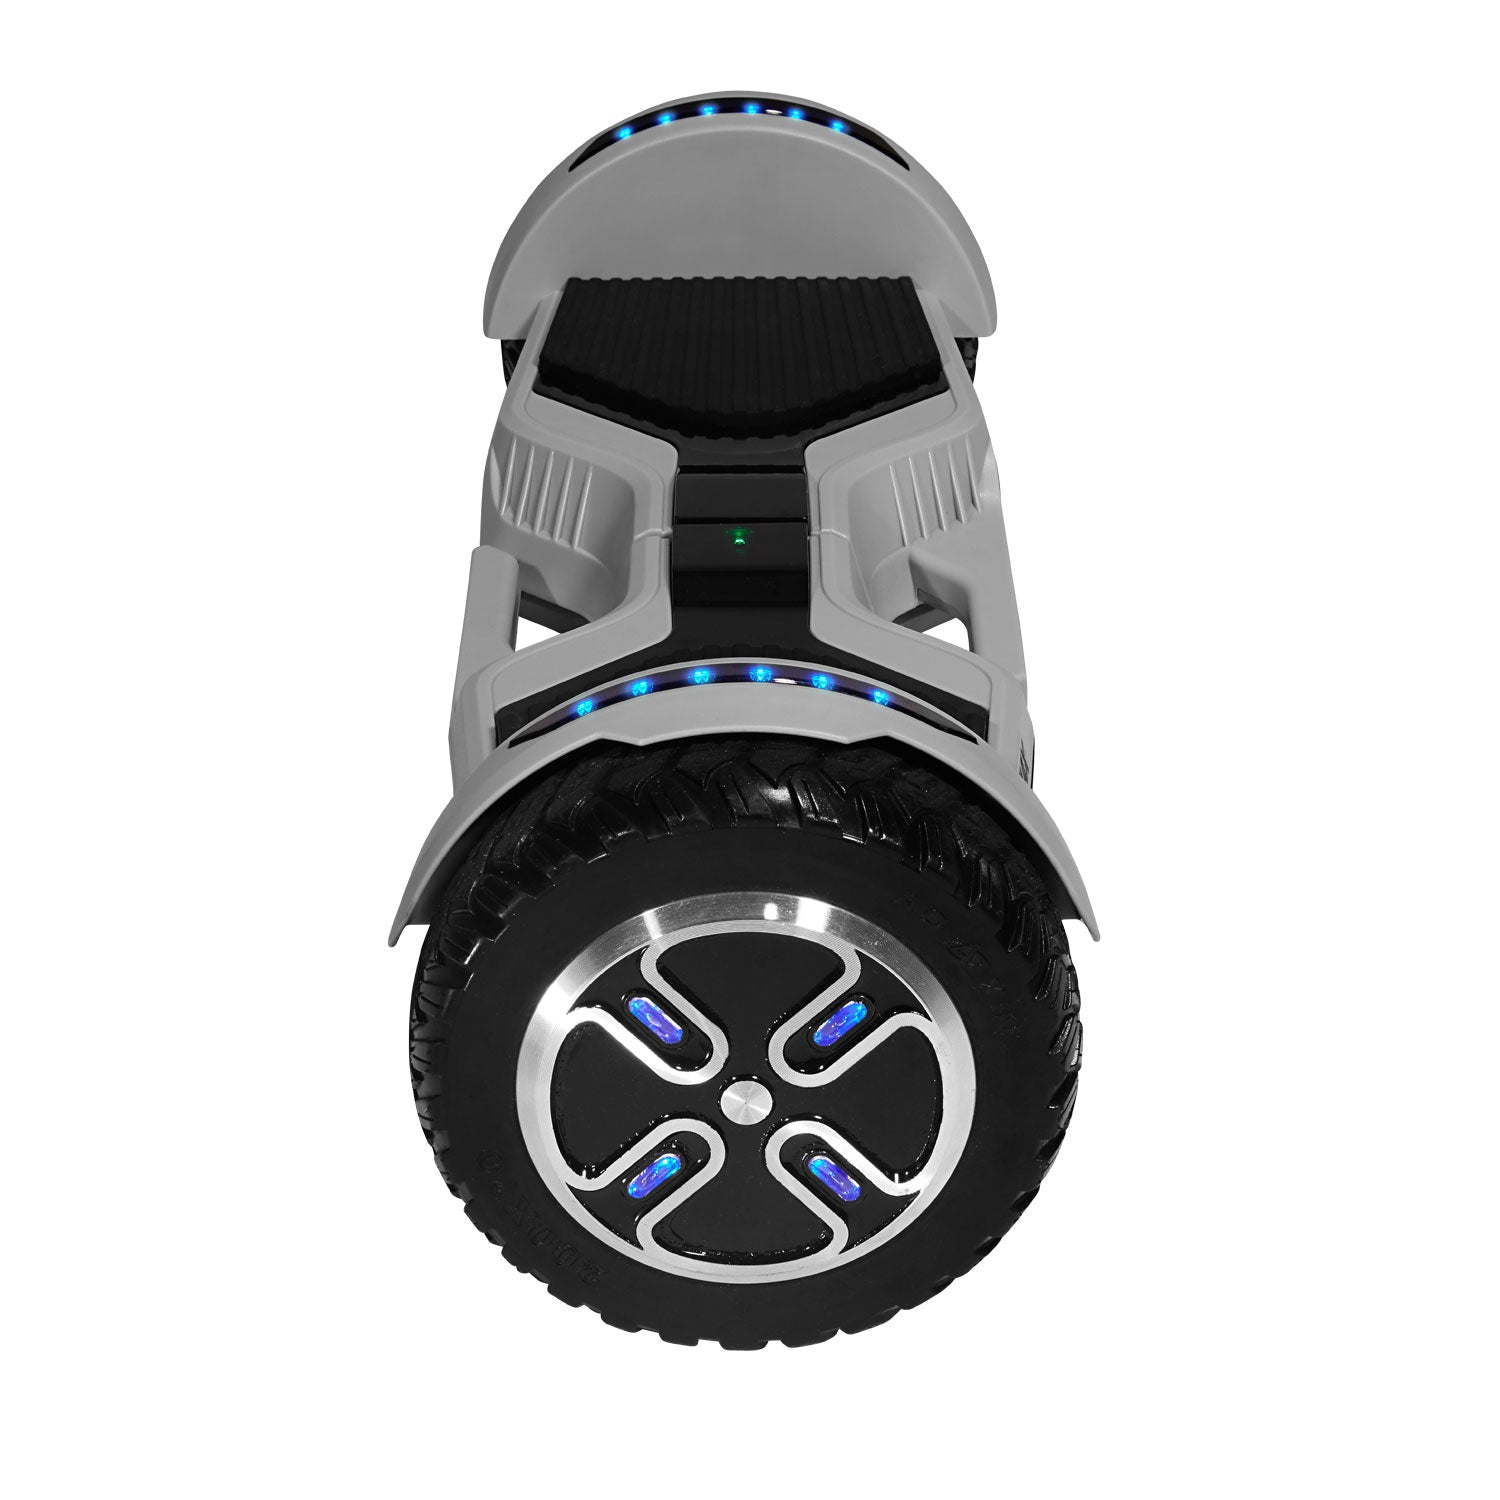 Gray E3 hoverboard side image